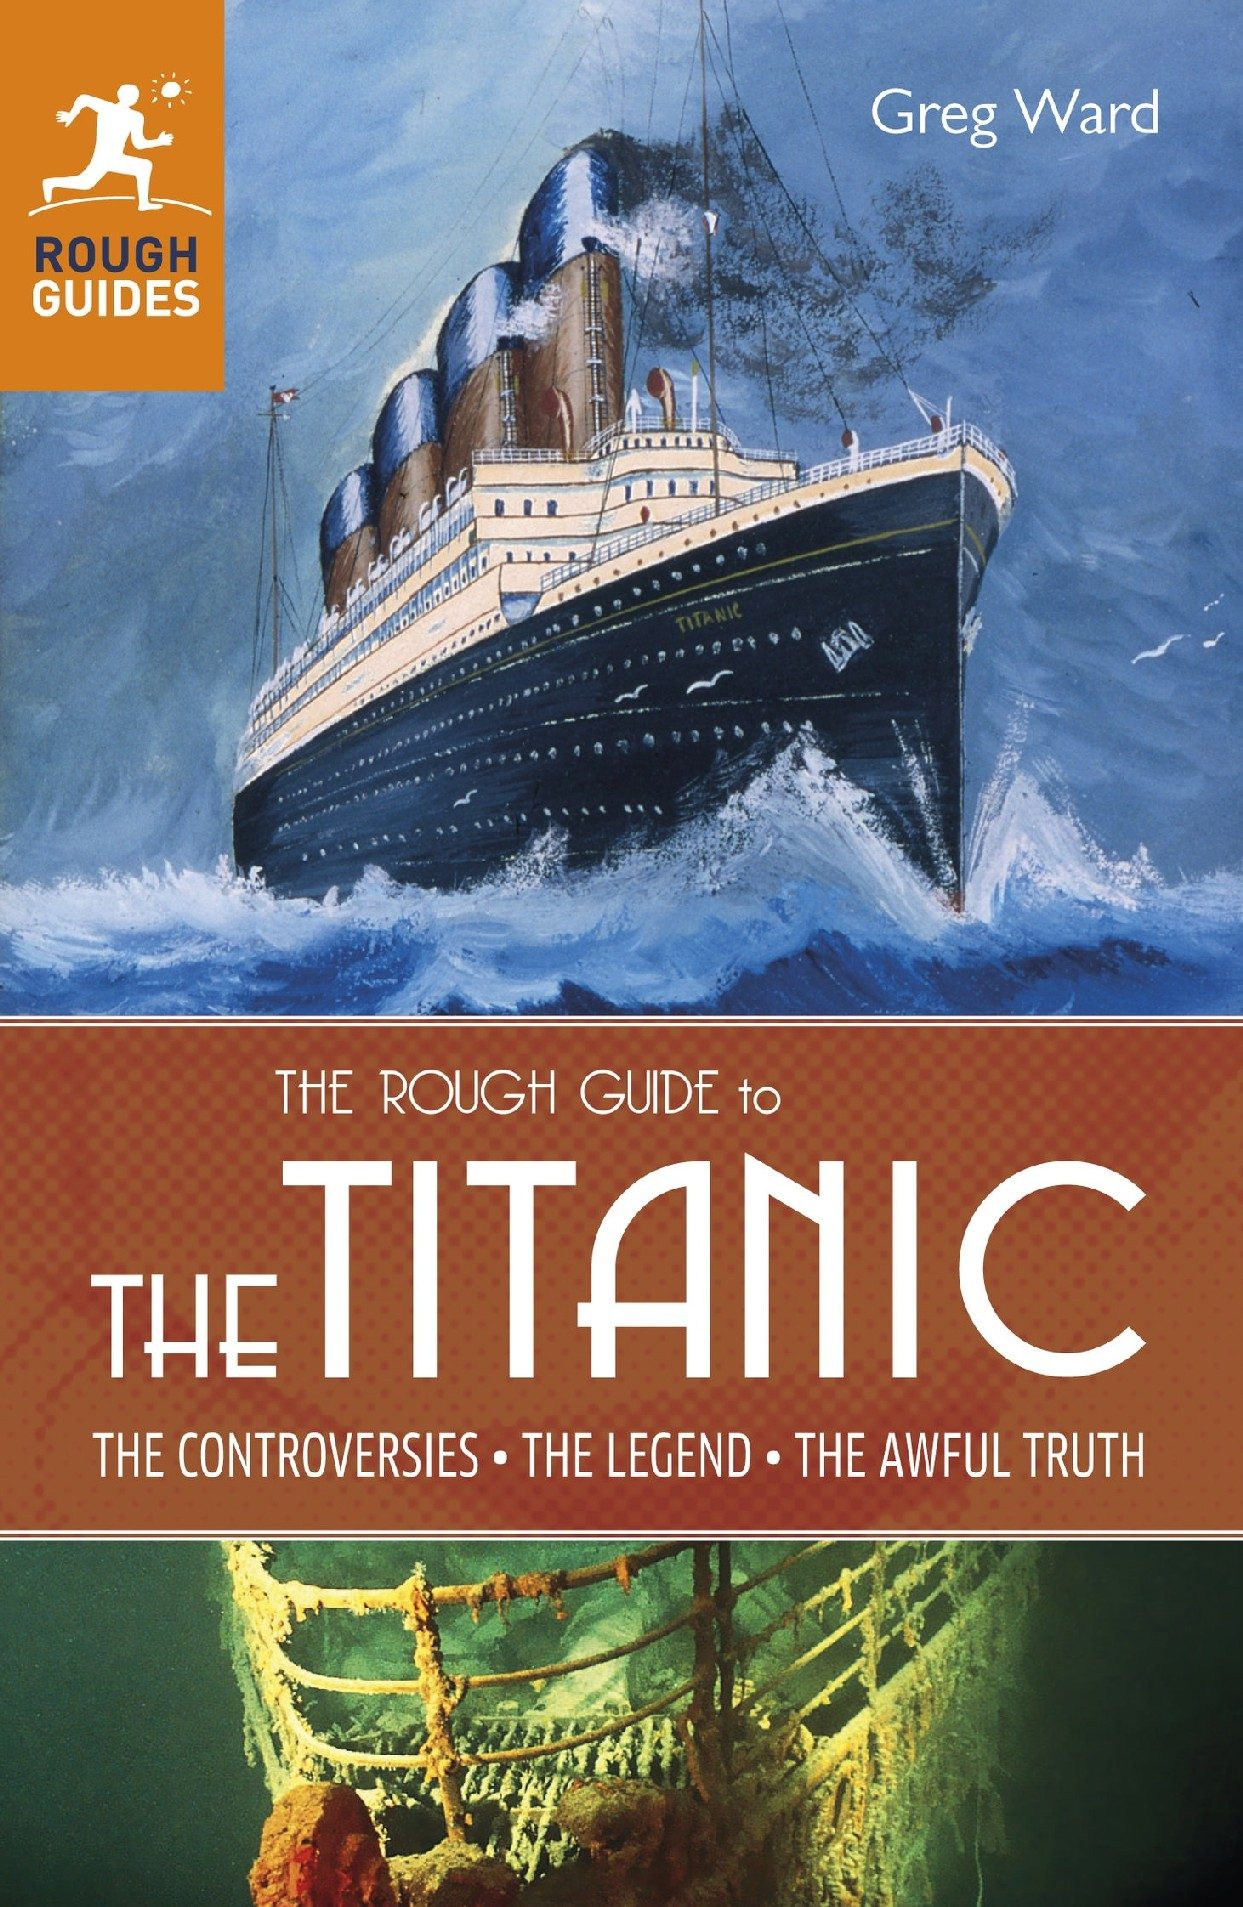 Libro Titanic The Rough Guide To The Titanic Ebook Vv Aa Descargar Libro